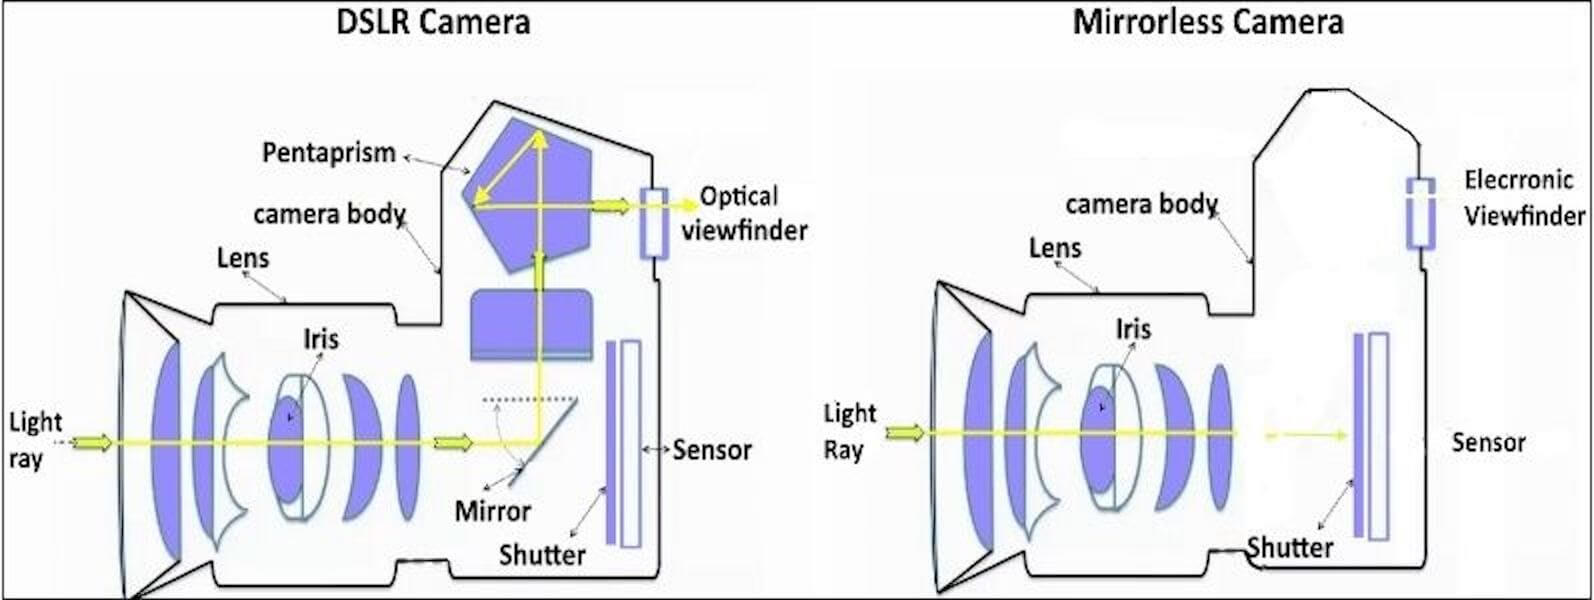 What is a Mirrorless Camera - Mirrorless Camera vs DSLR - Diagram